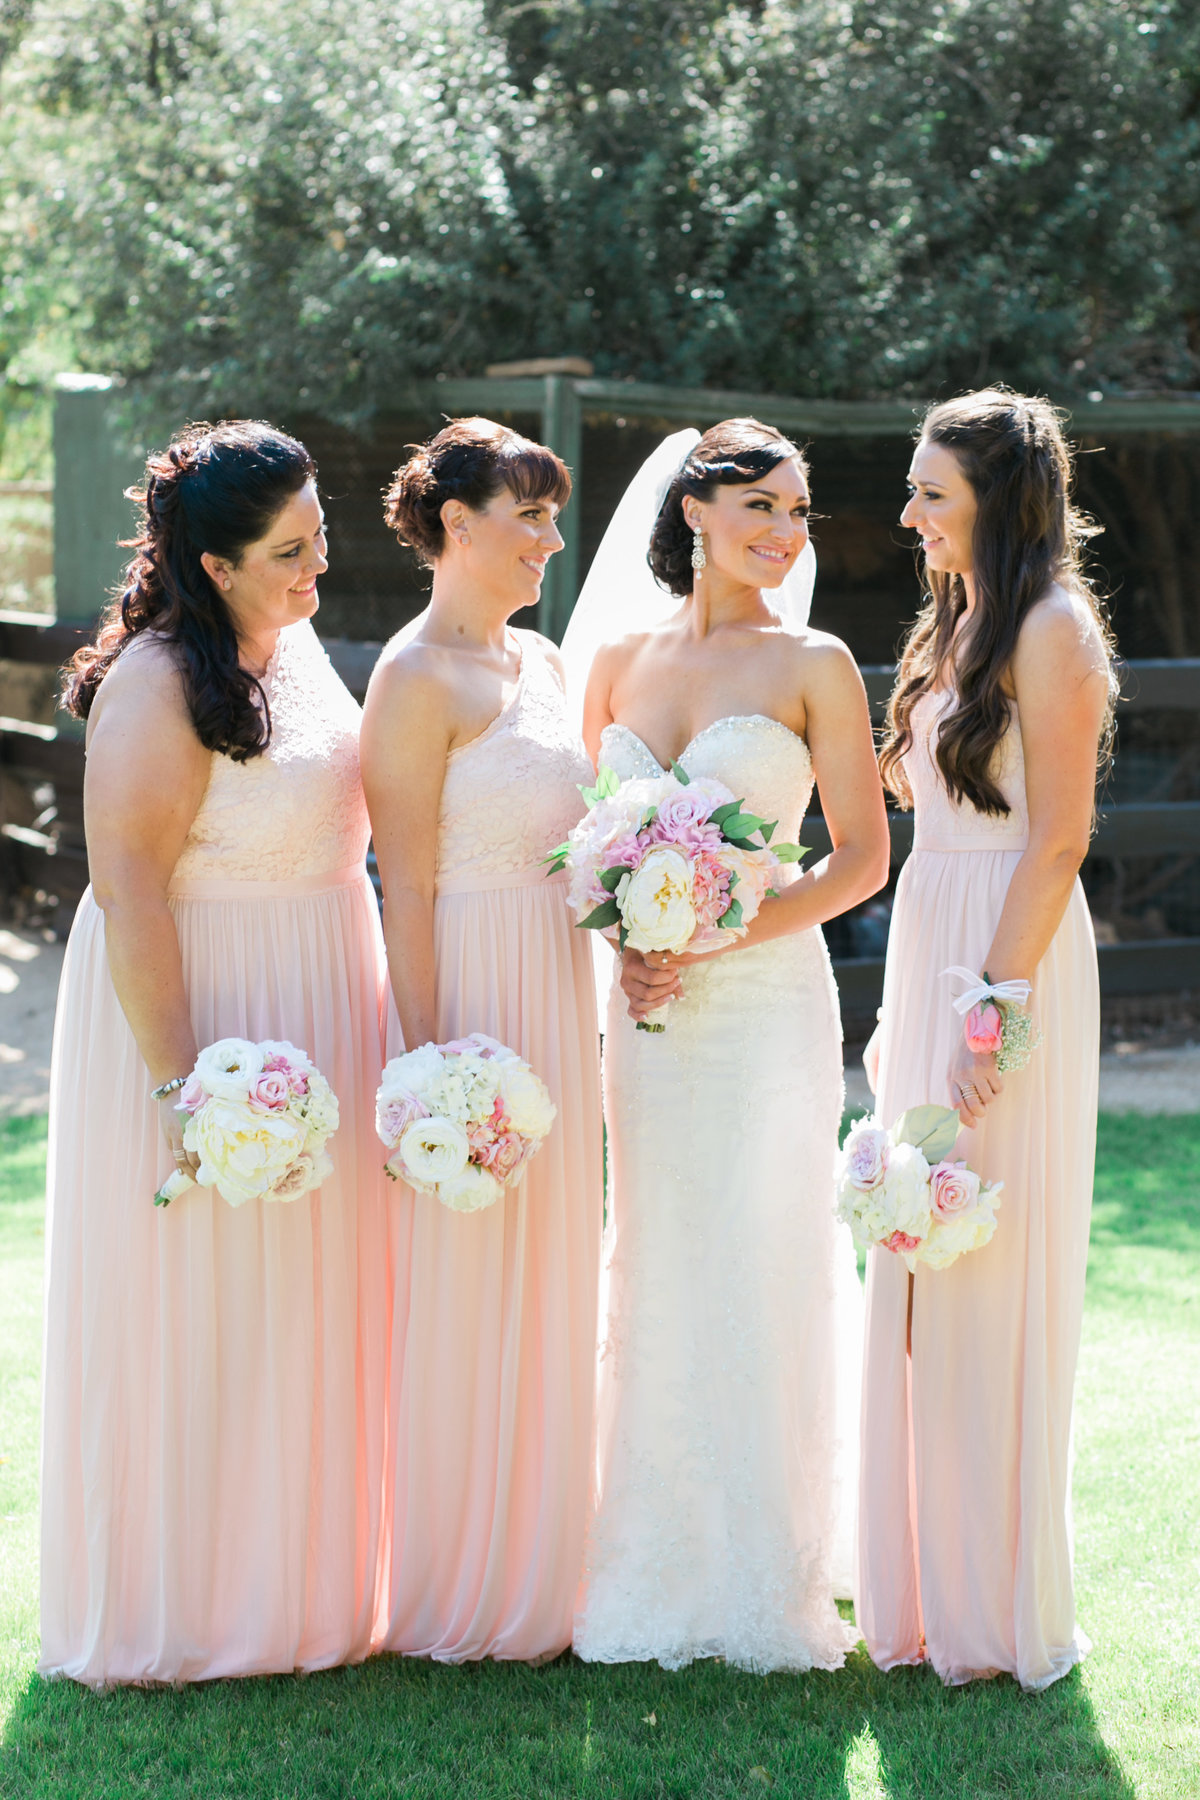 Chelsea_Drew_Rustic_Backyard_Wedding0358